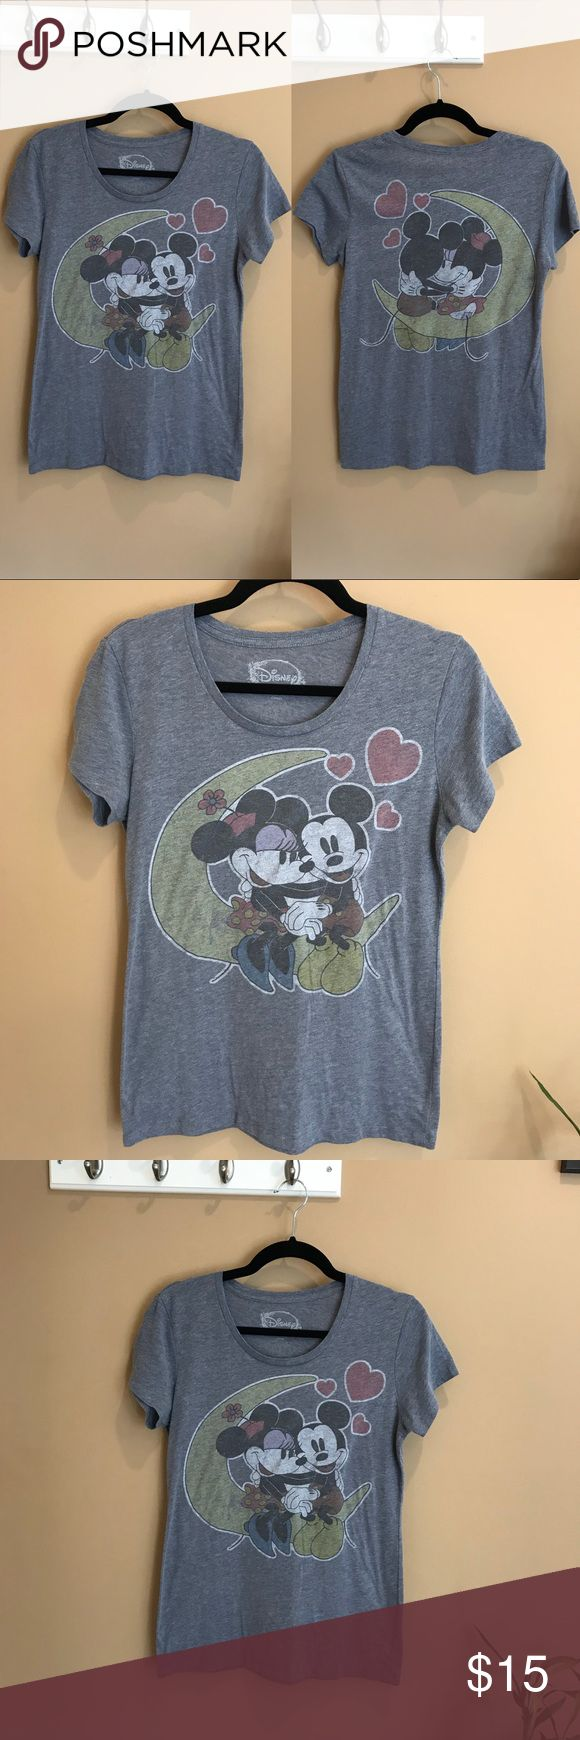 Disney Mickey & Minnie Love & Hearts Moon T-Shirt Soft gray and in good condition with no flaws! Disney's Mickey & Minnie sitting on the moon with hearts. Over the moon in Love grey top. Comfortable. Size medium. Front and back feature cute graphic designs.   Perfect for any Disney lover — also a great Valentine's Day tee! Disney Tops Tees - Short Sleeve